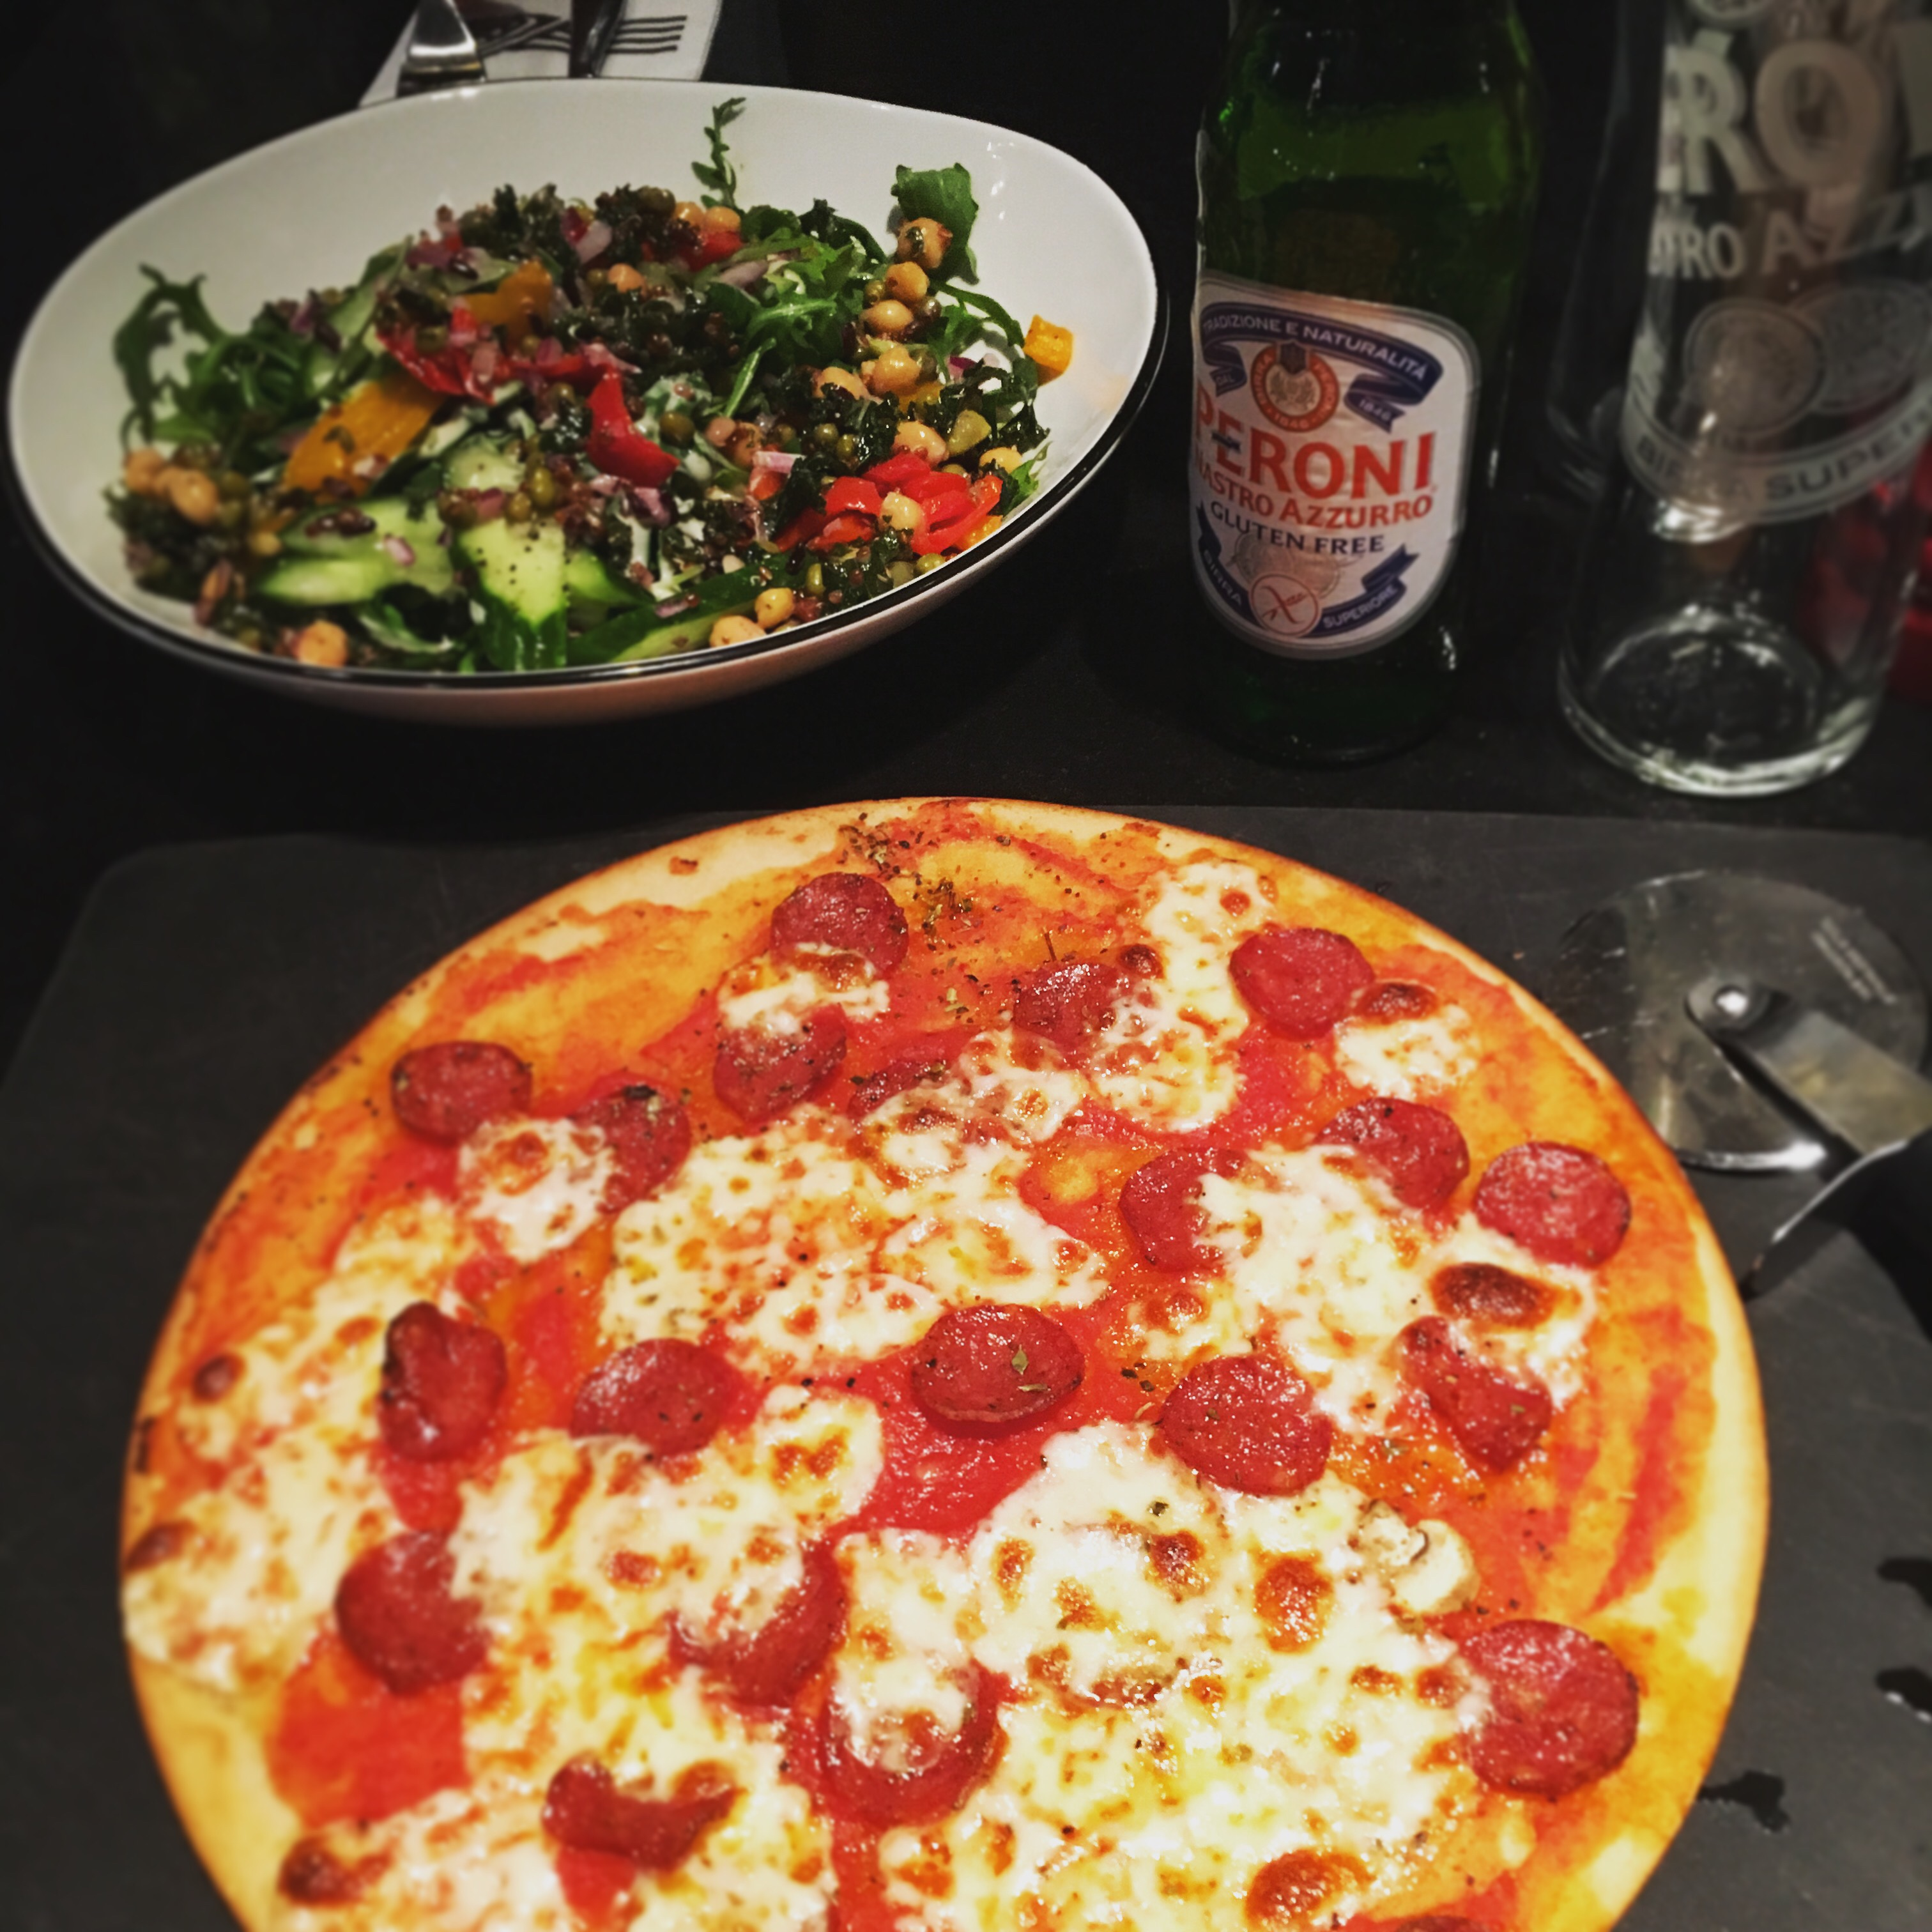 Pizza Express pizza, beer and salad.